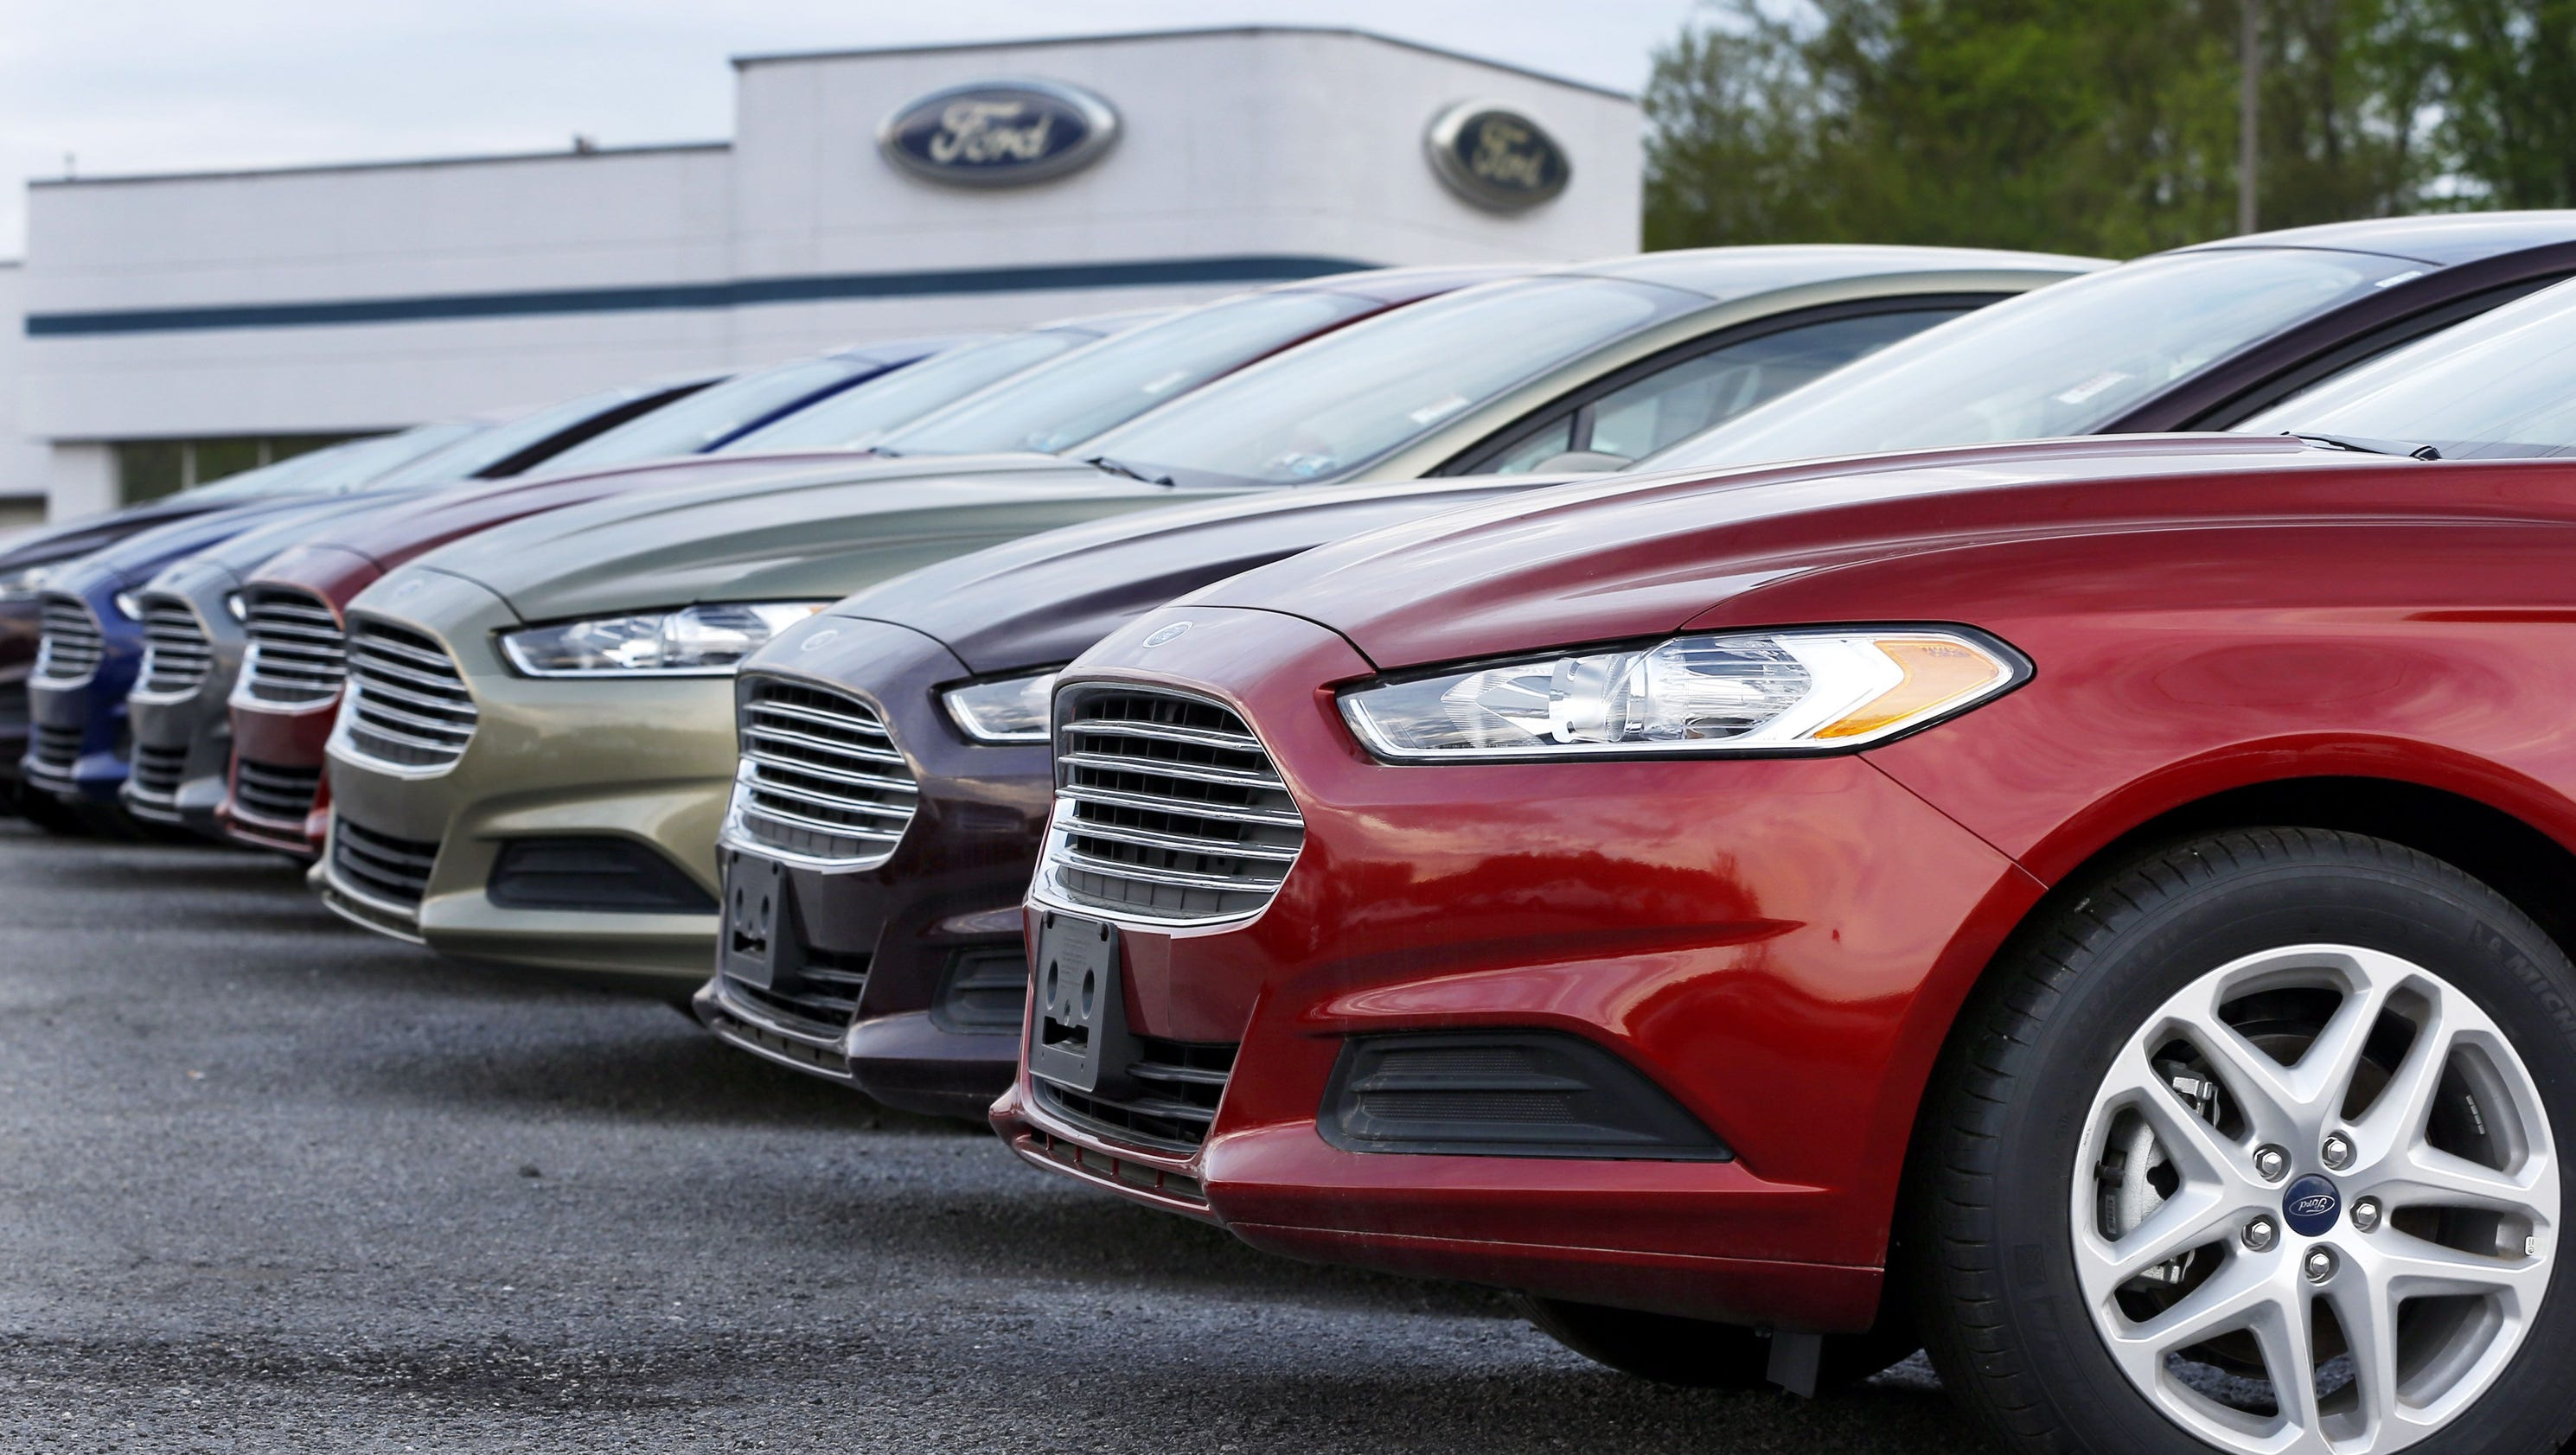 Plummeting interest in passenger cars drags down U.S. auto sales